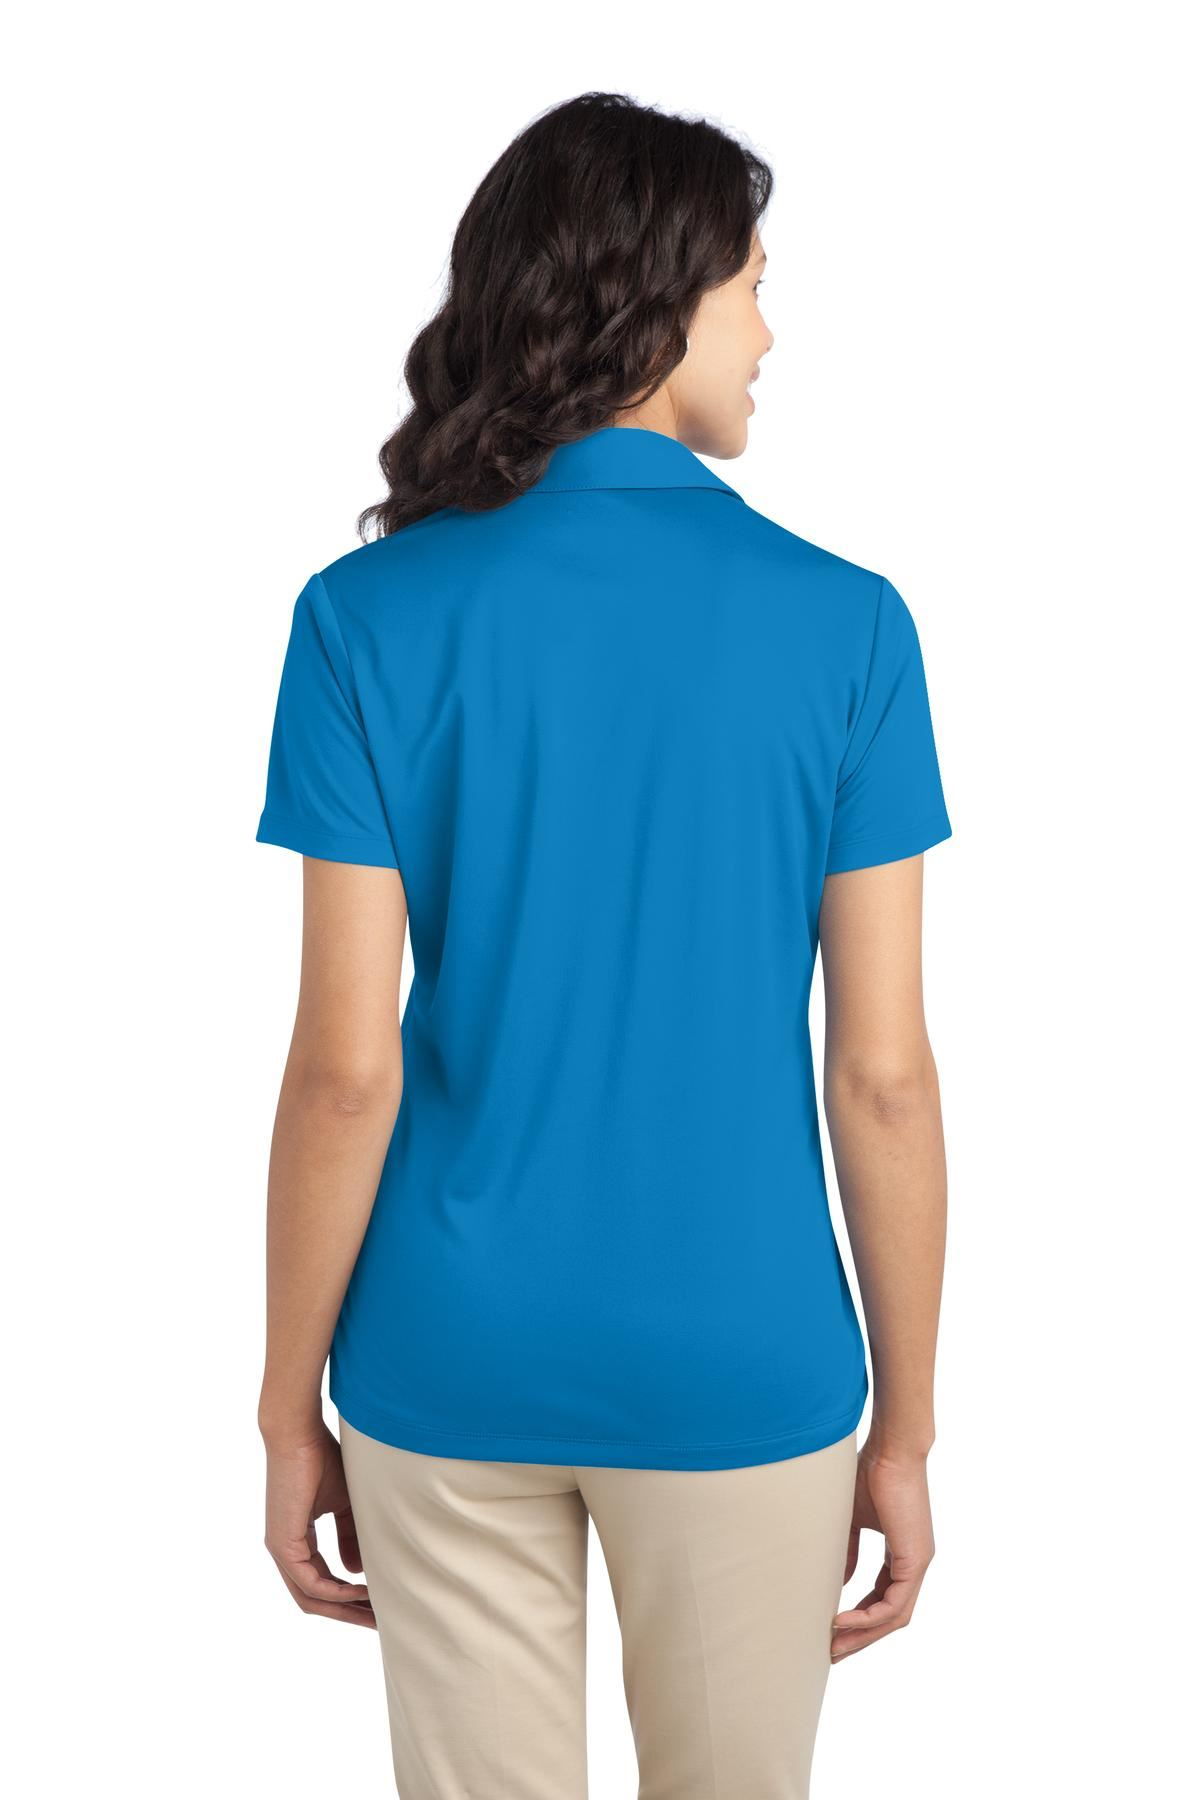 Port-Authority-Womens-Dri-Fit-SIlk-Touch-Performance-Polo-Golf-Shirt-M-L540 thumbnail 9